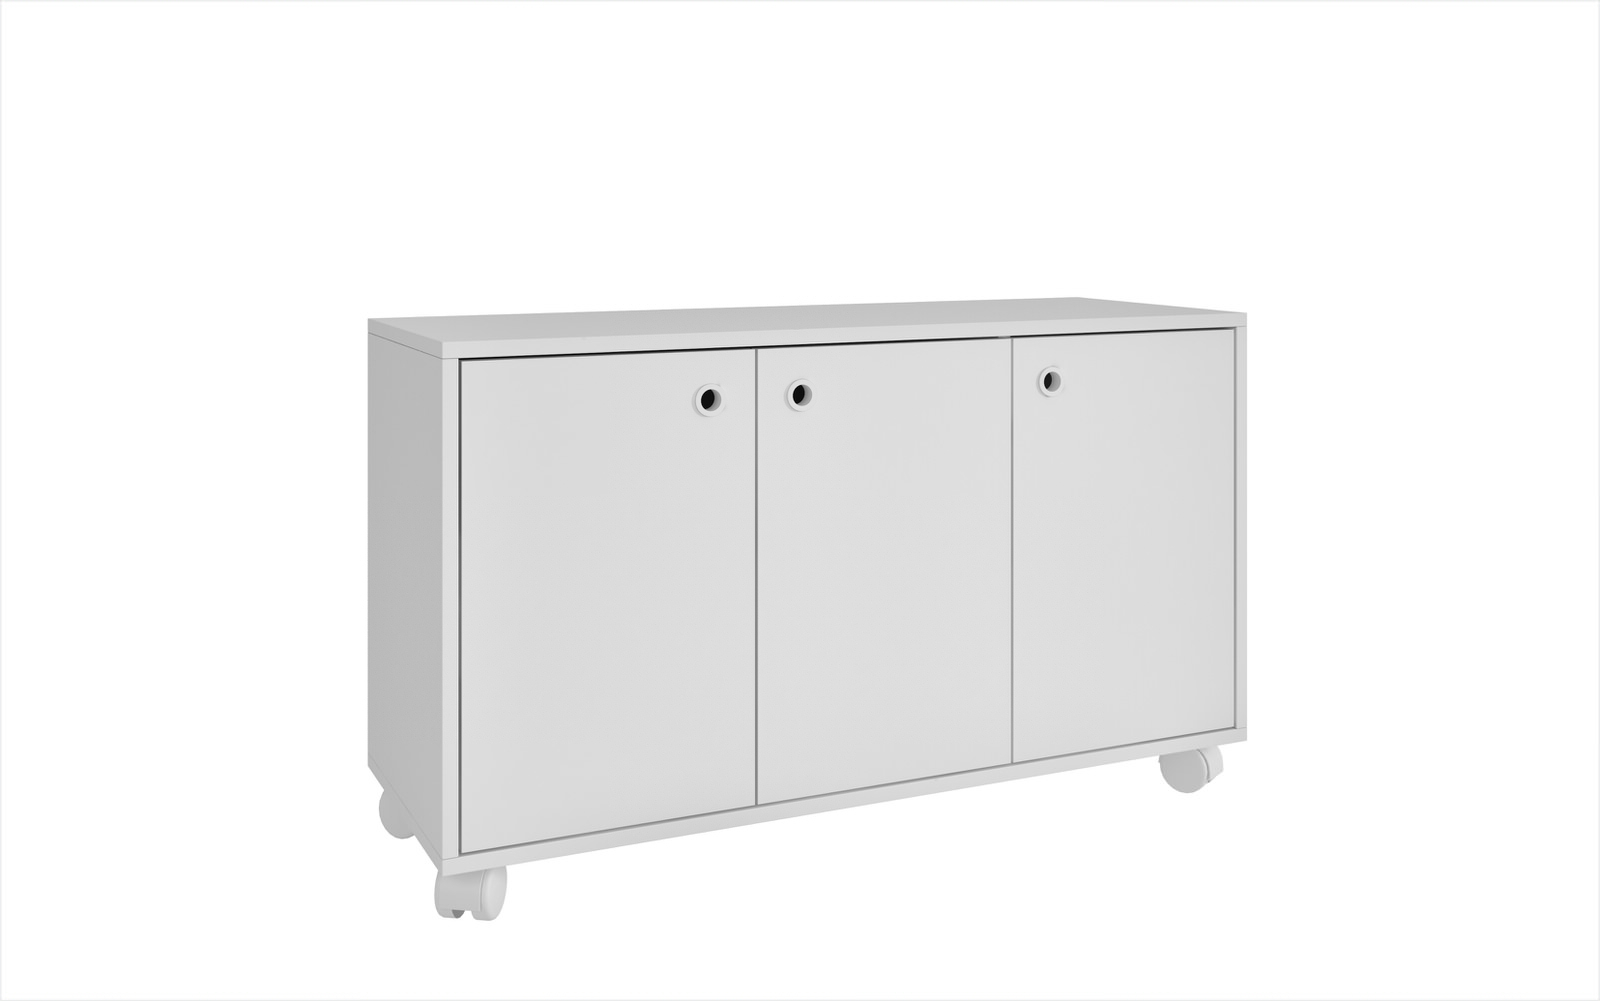 Most Recently Released Dali White 3 Shelf Cabinetmanhattan Comfort Pertaining To Charcoal Finish 4 Door Jumbo Sideboards (View 12 of 20)